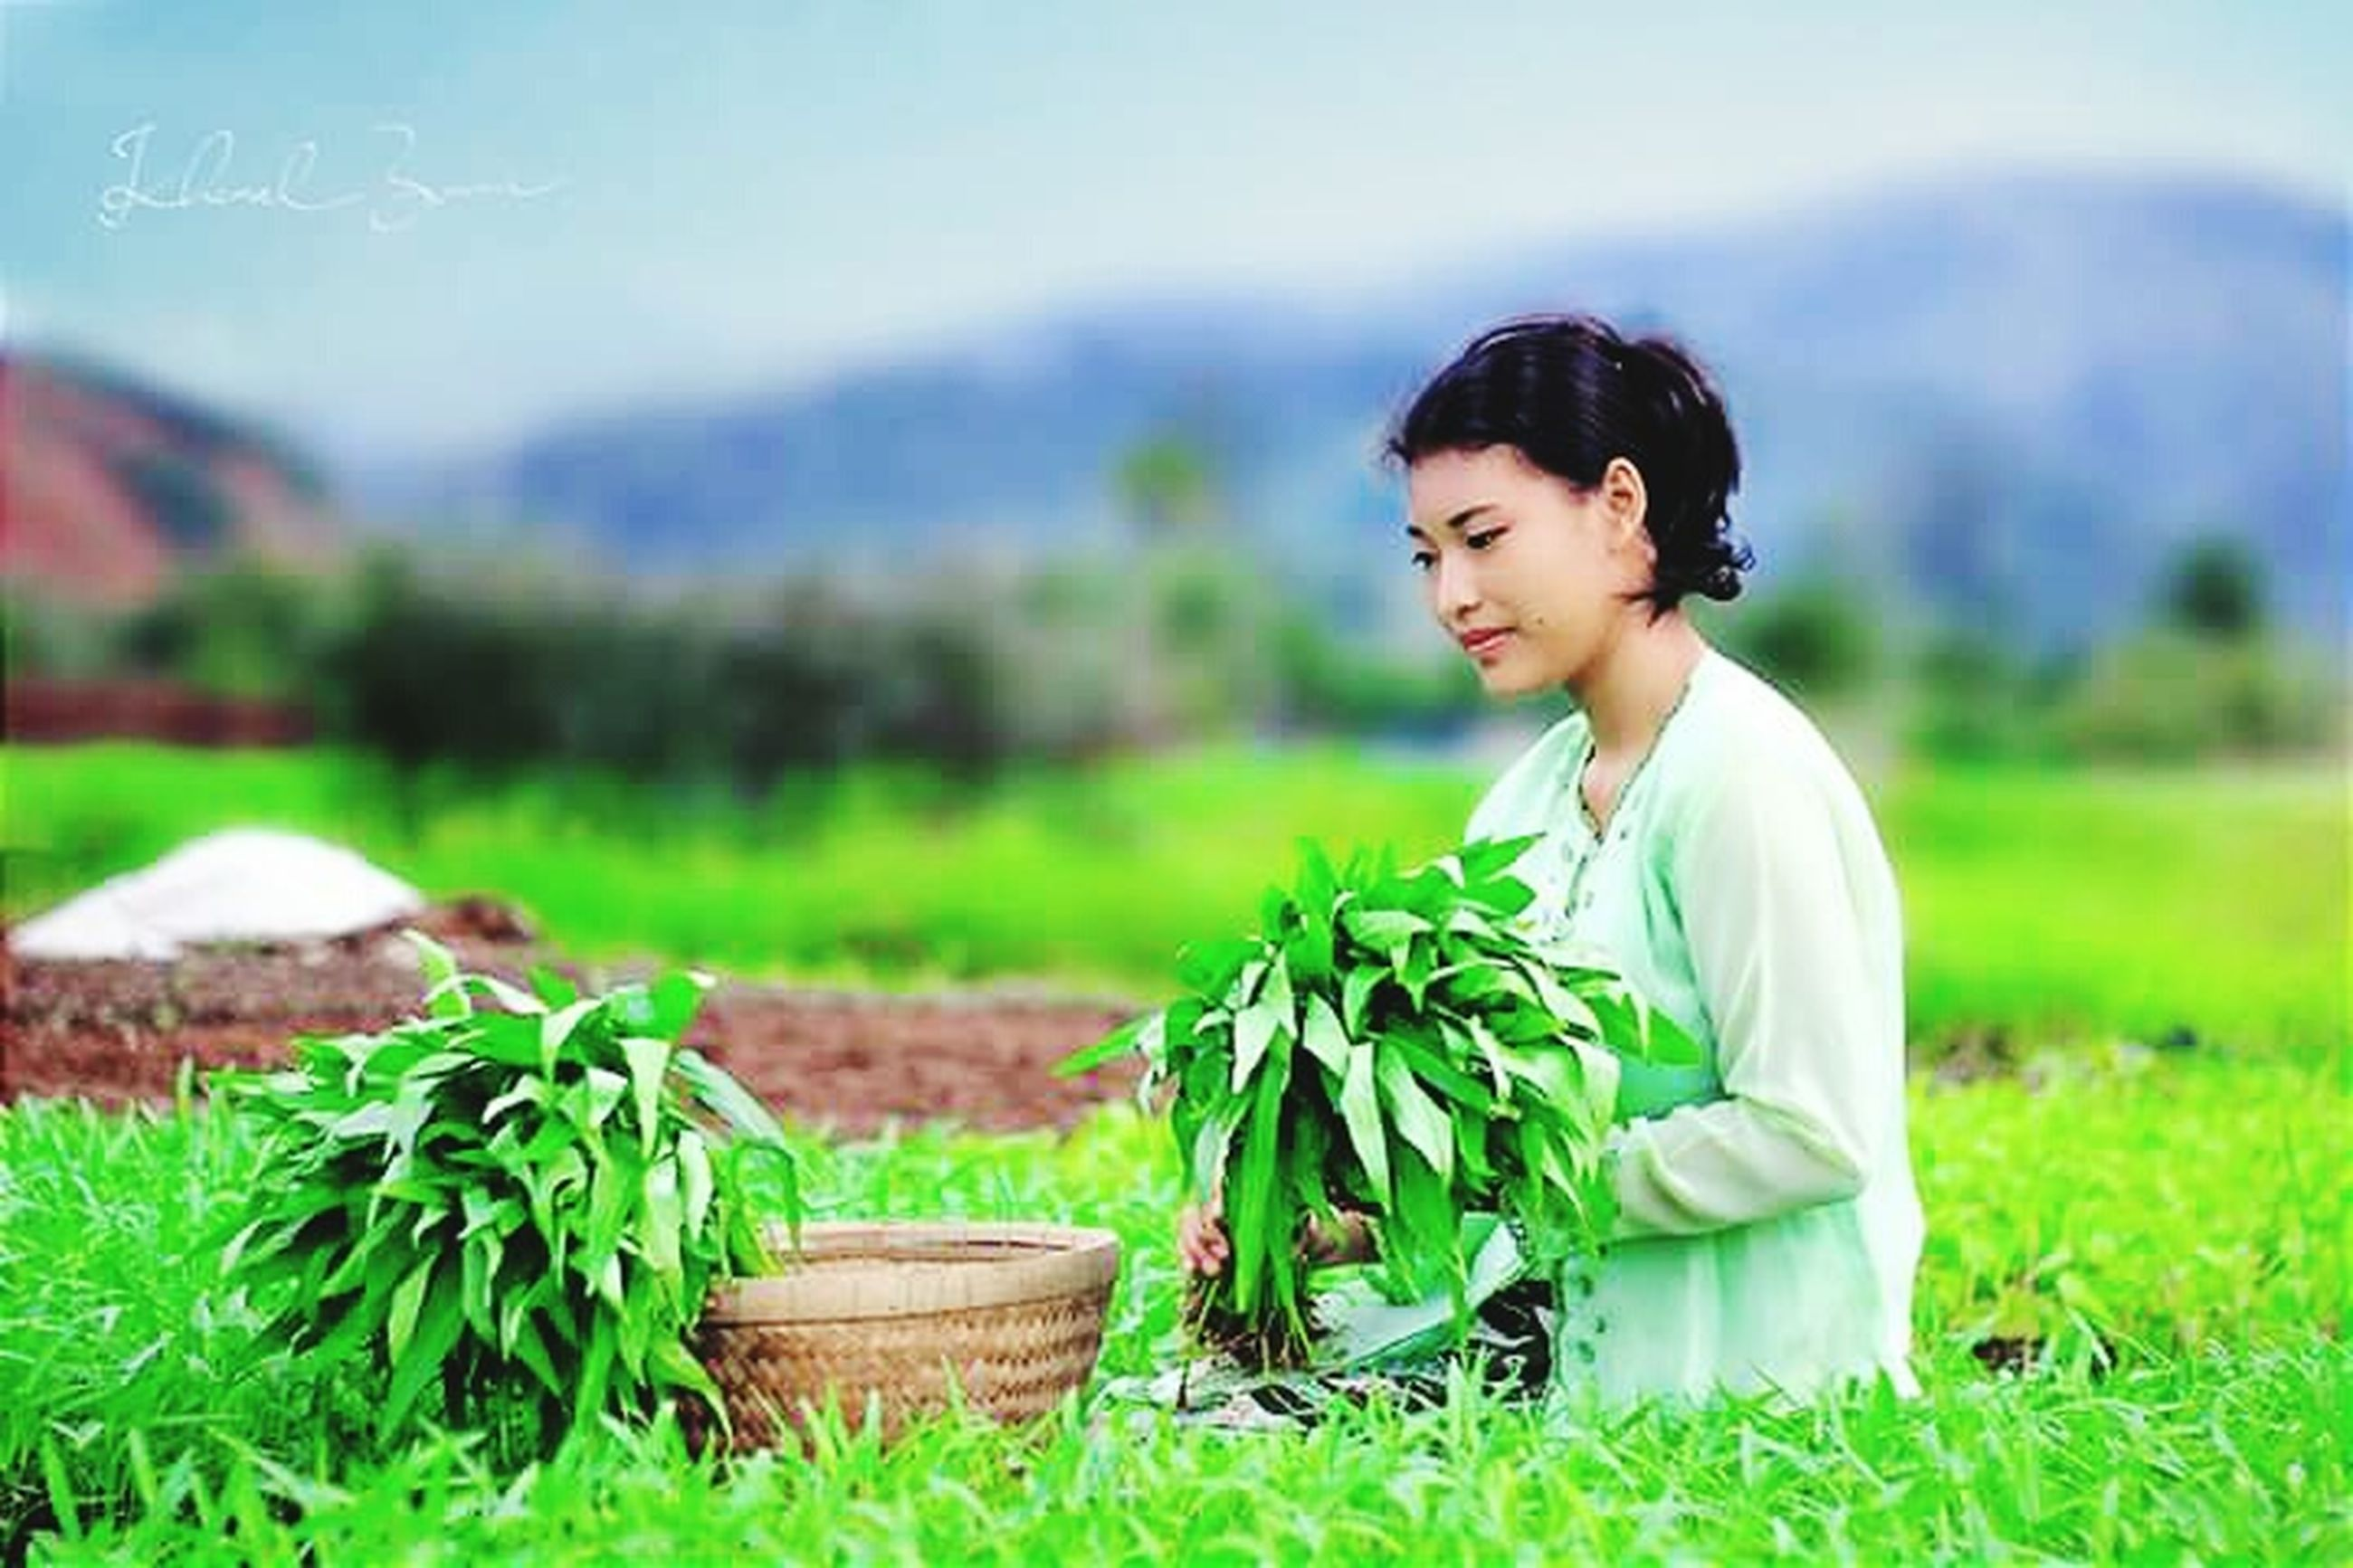 plant, one person, adult, green color, young adult, grass, vegetable, nature, basket, growth, beauty, agriculture, food and drink, lifestyles, women, field, container, food, gardening, beautiful woman, organic, outdoors